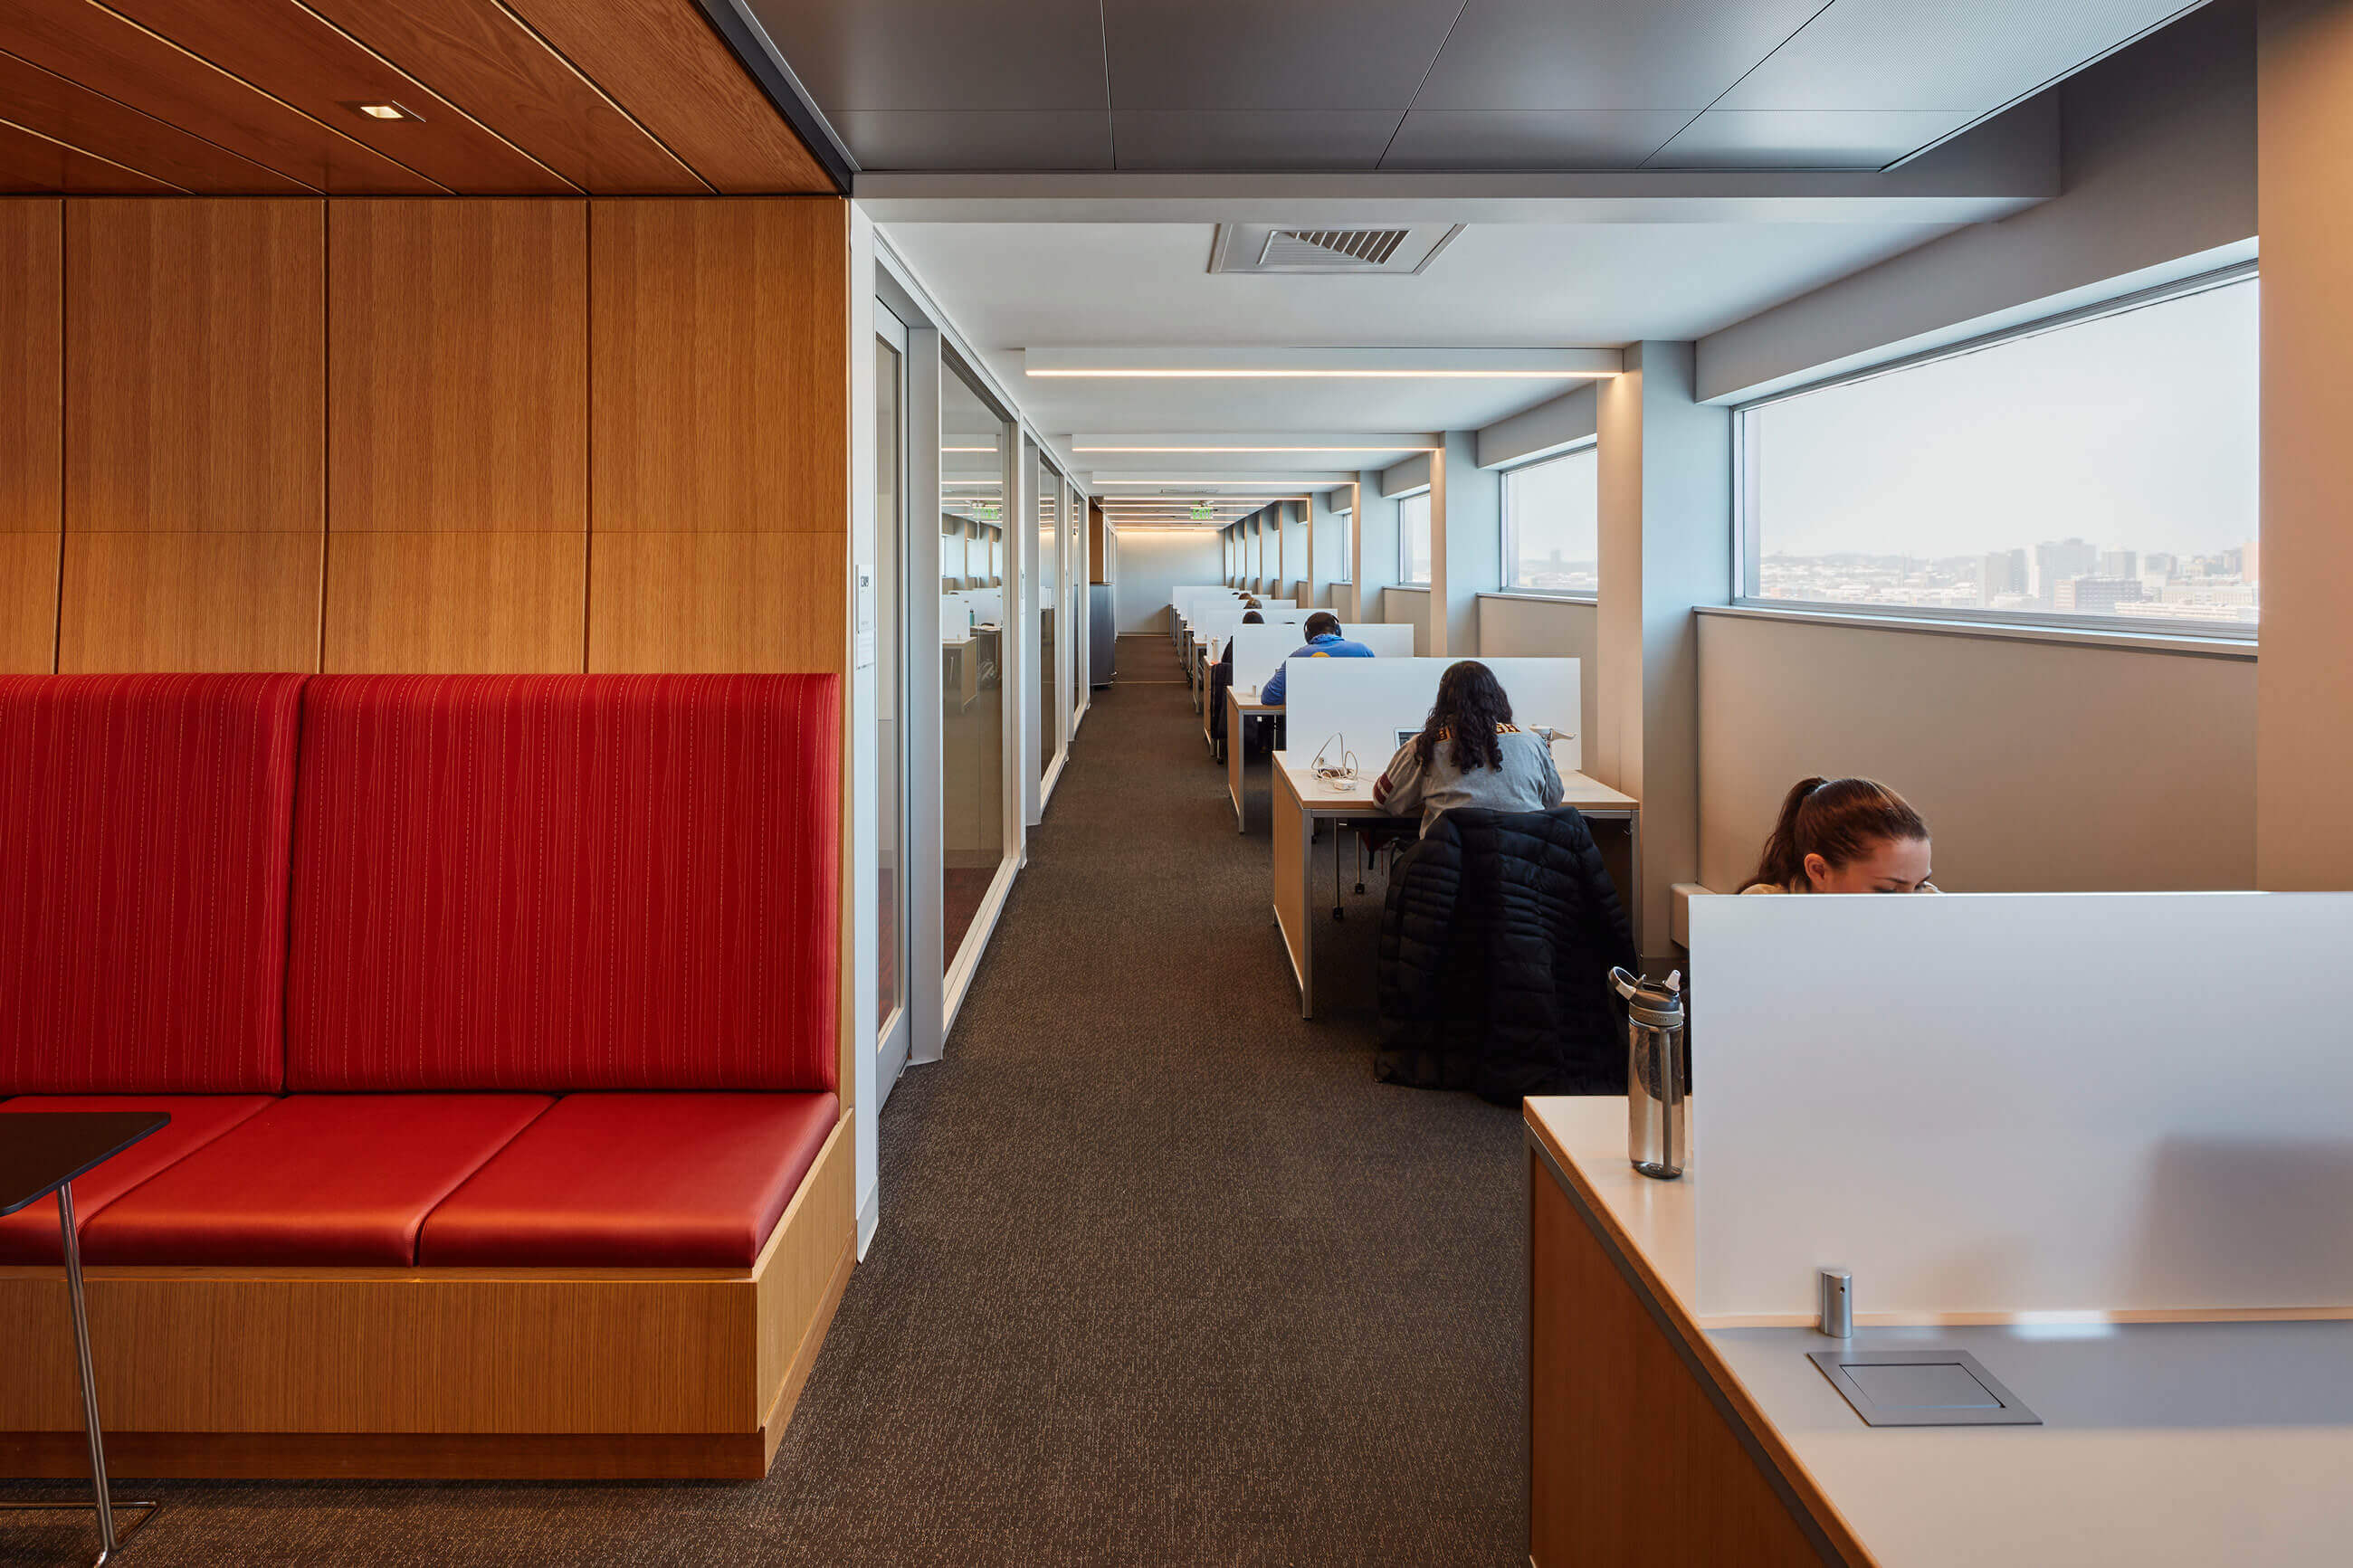 Finegold Alexander Architects installed warm wood finishes with red touches in this interior view of the library floor at BU's Alumni Medical Library